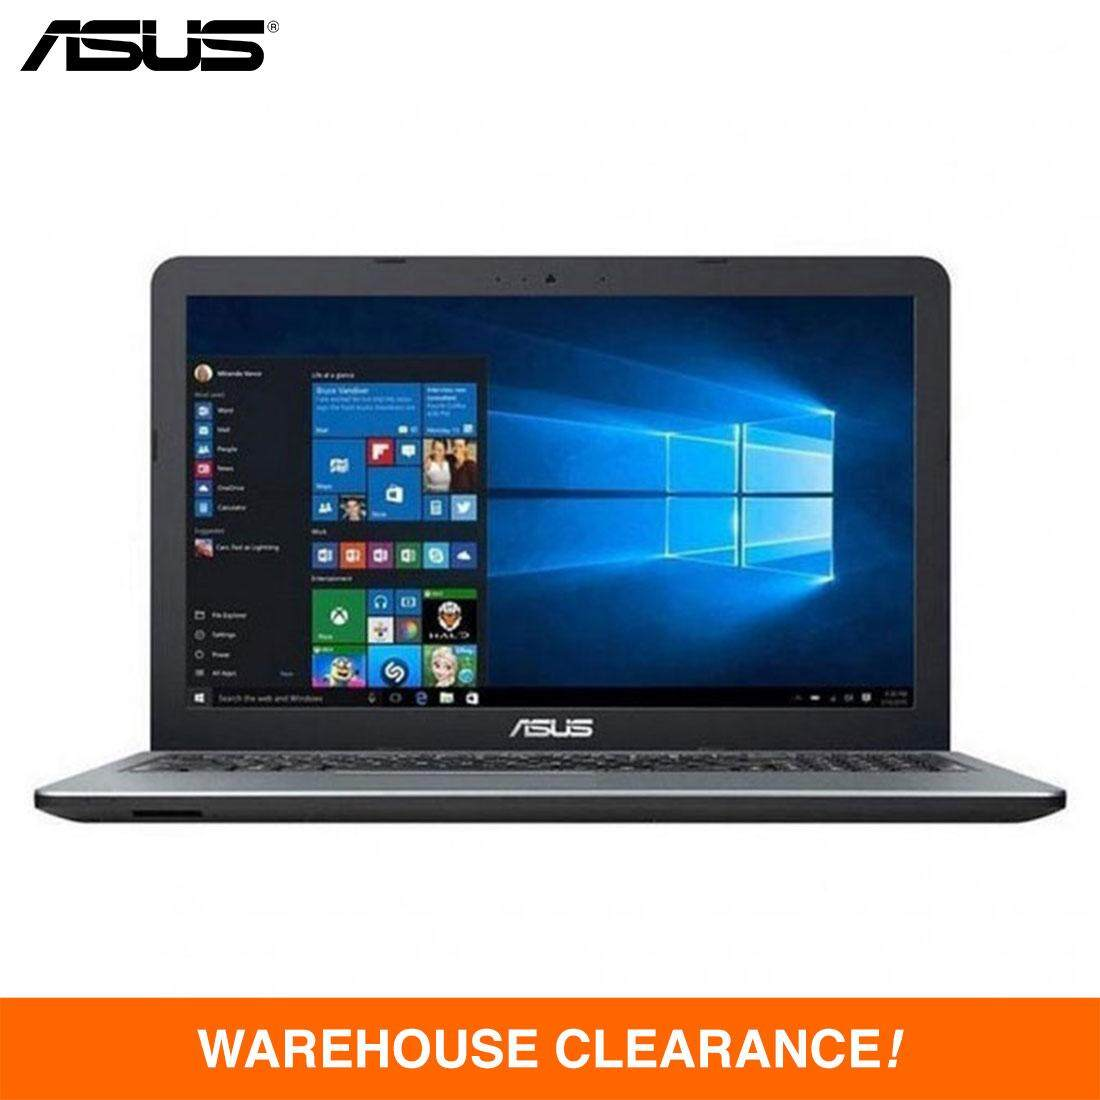 ASUS® VivoBook X441U-RGA053T Laptop - Intel Core i5-7200U, 2.50Ghz, 4GB DDR4, 1TB, 14-inch LED, NVD GT930MX 2GB DDR3, DVDRW, Windows 10 64bit (Silver) Malaysia